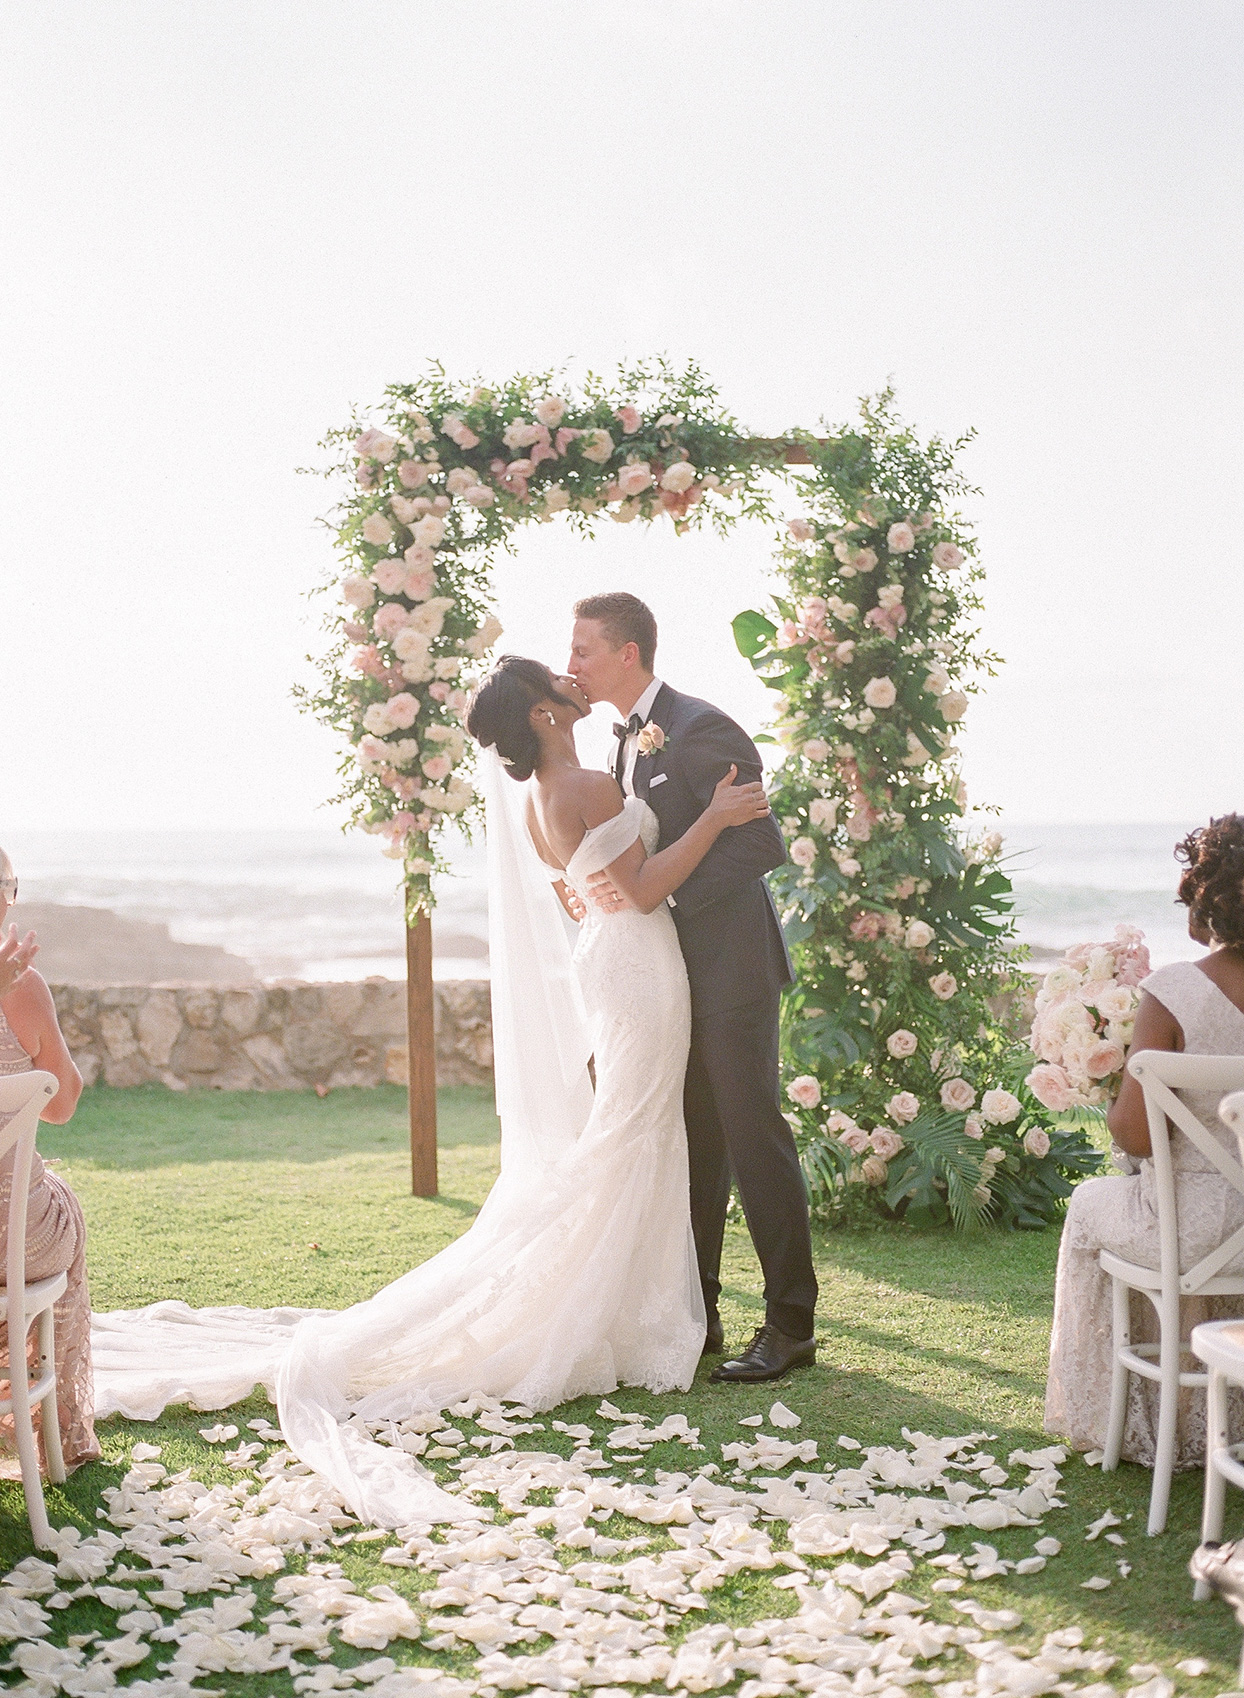 vanessa nathan wedding ceremony kiss in front of floral arch